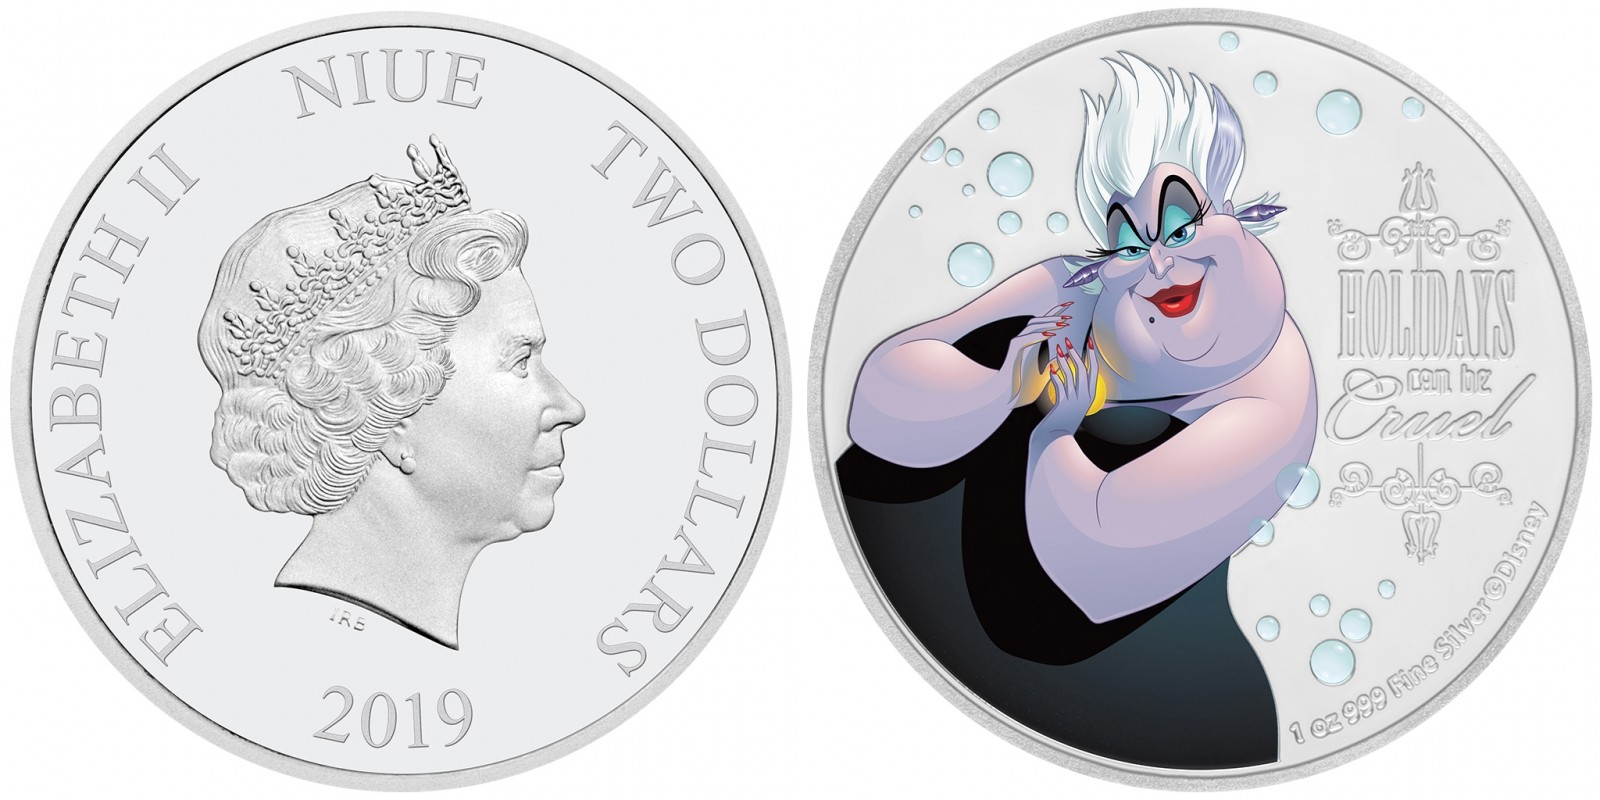 niue 2019 méchants de disney ursula